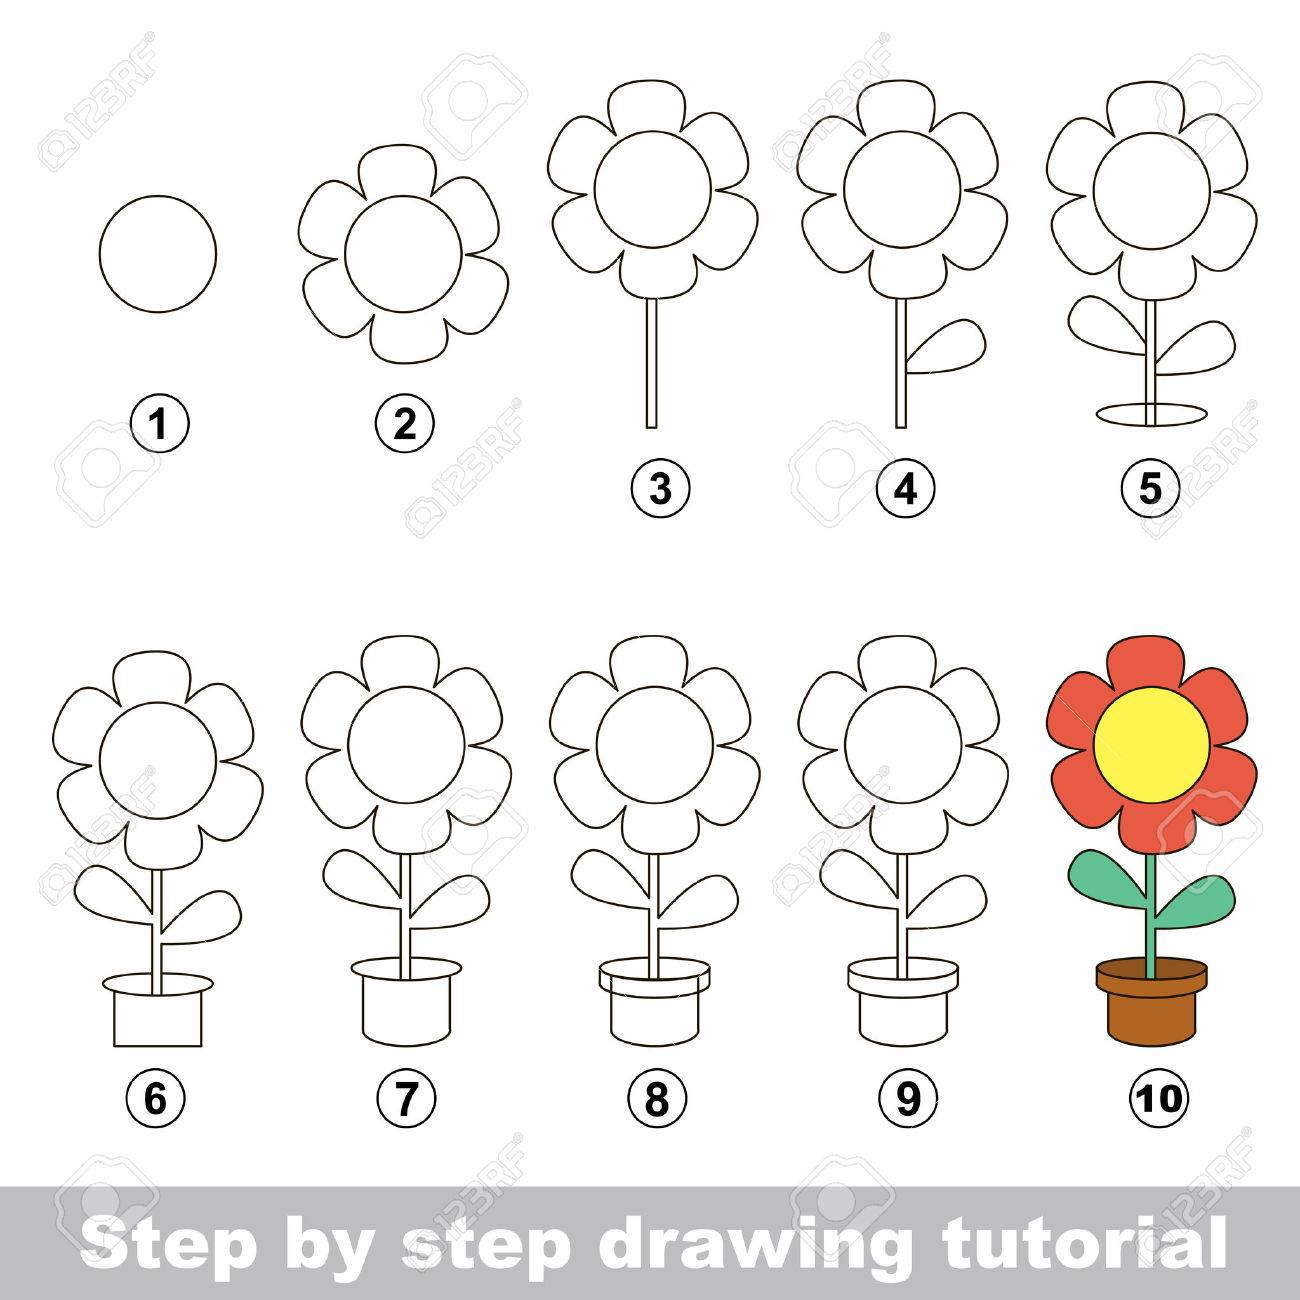 Visual Game For Kids How To Draw A Pot Flower Royalty Free Cliparts Vectors And Stock Illustration Image 51515287